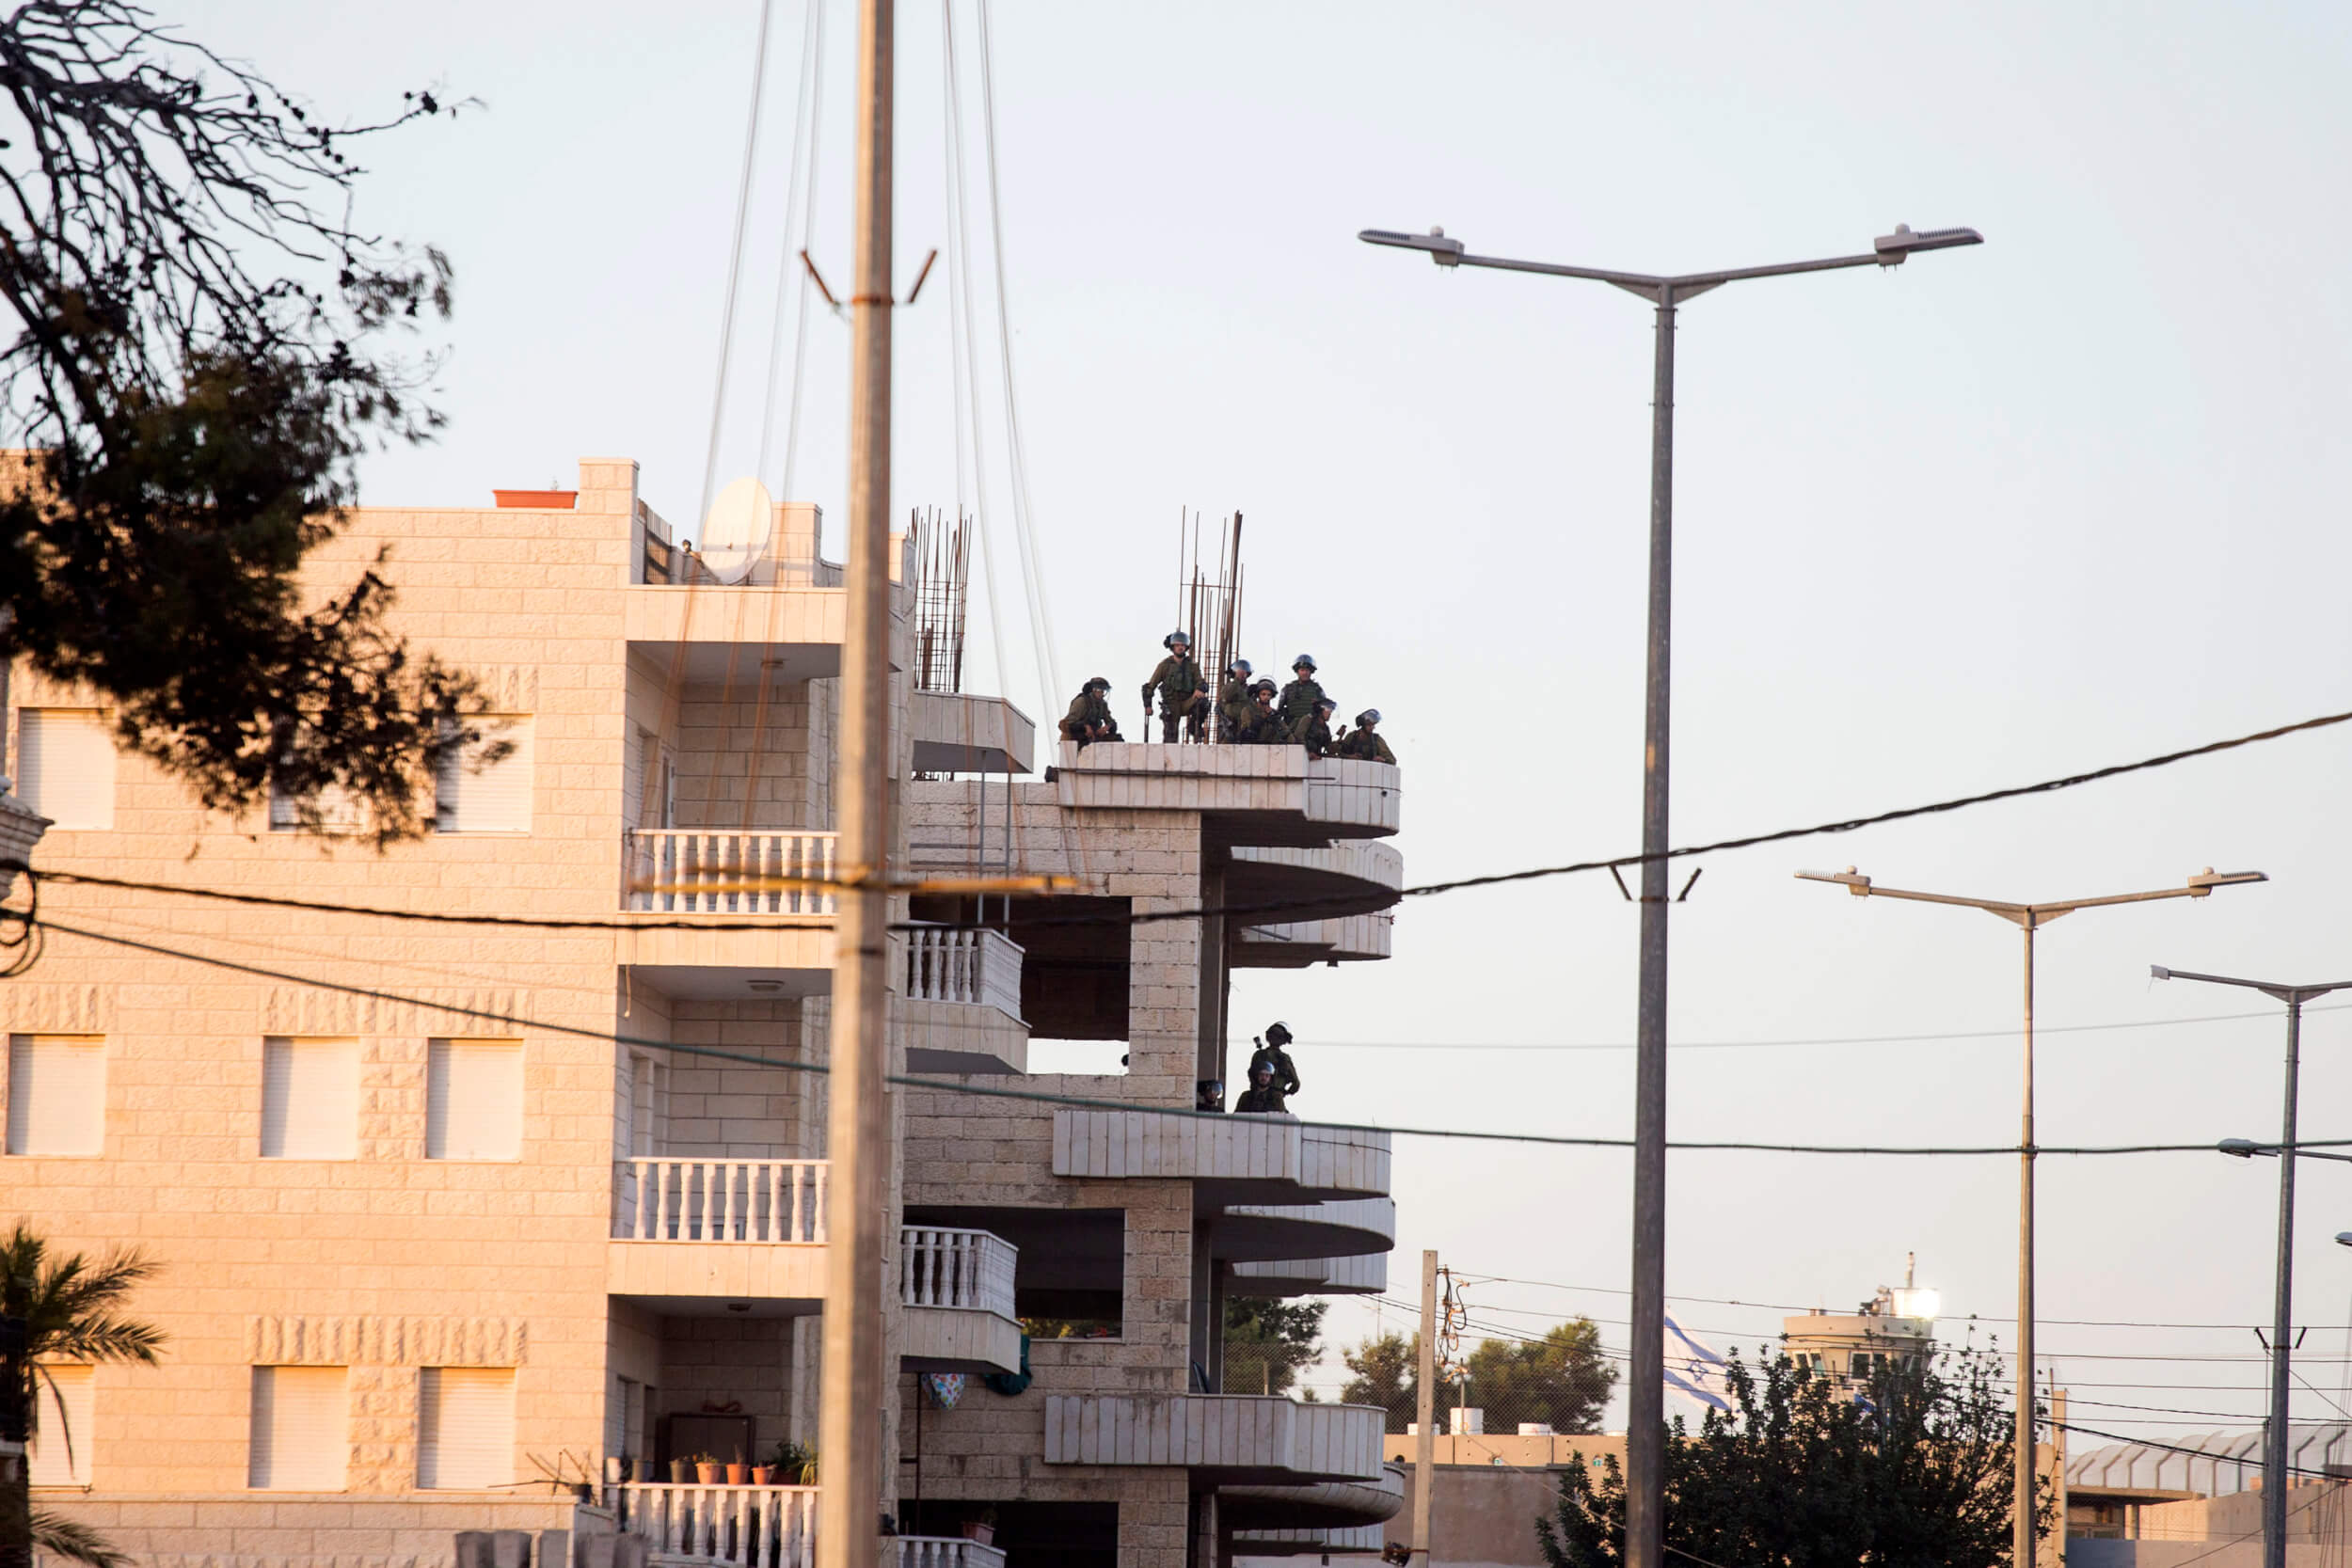 Israeli soldiers are seen on a top of a building inside Bethlehem. (Photo: Anne Paq)